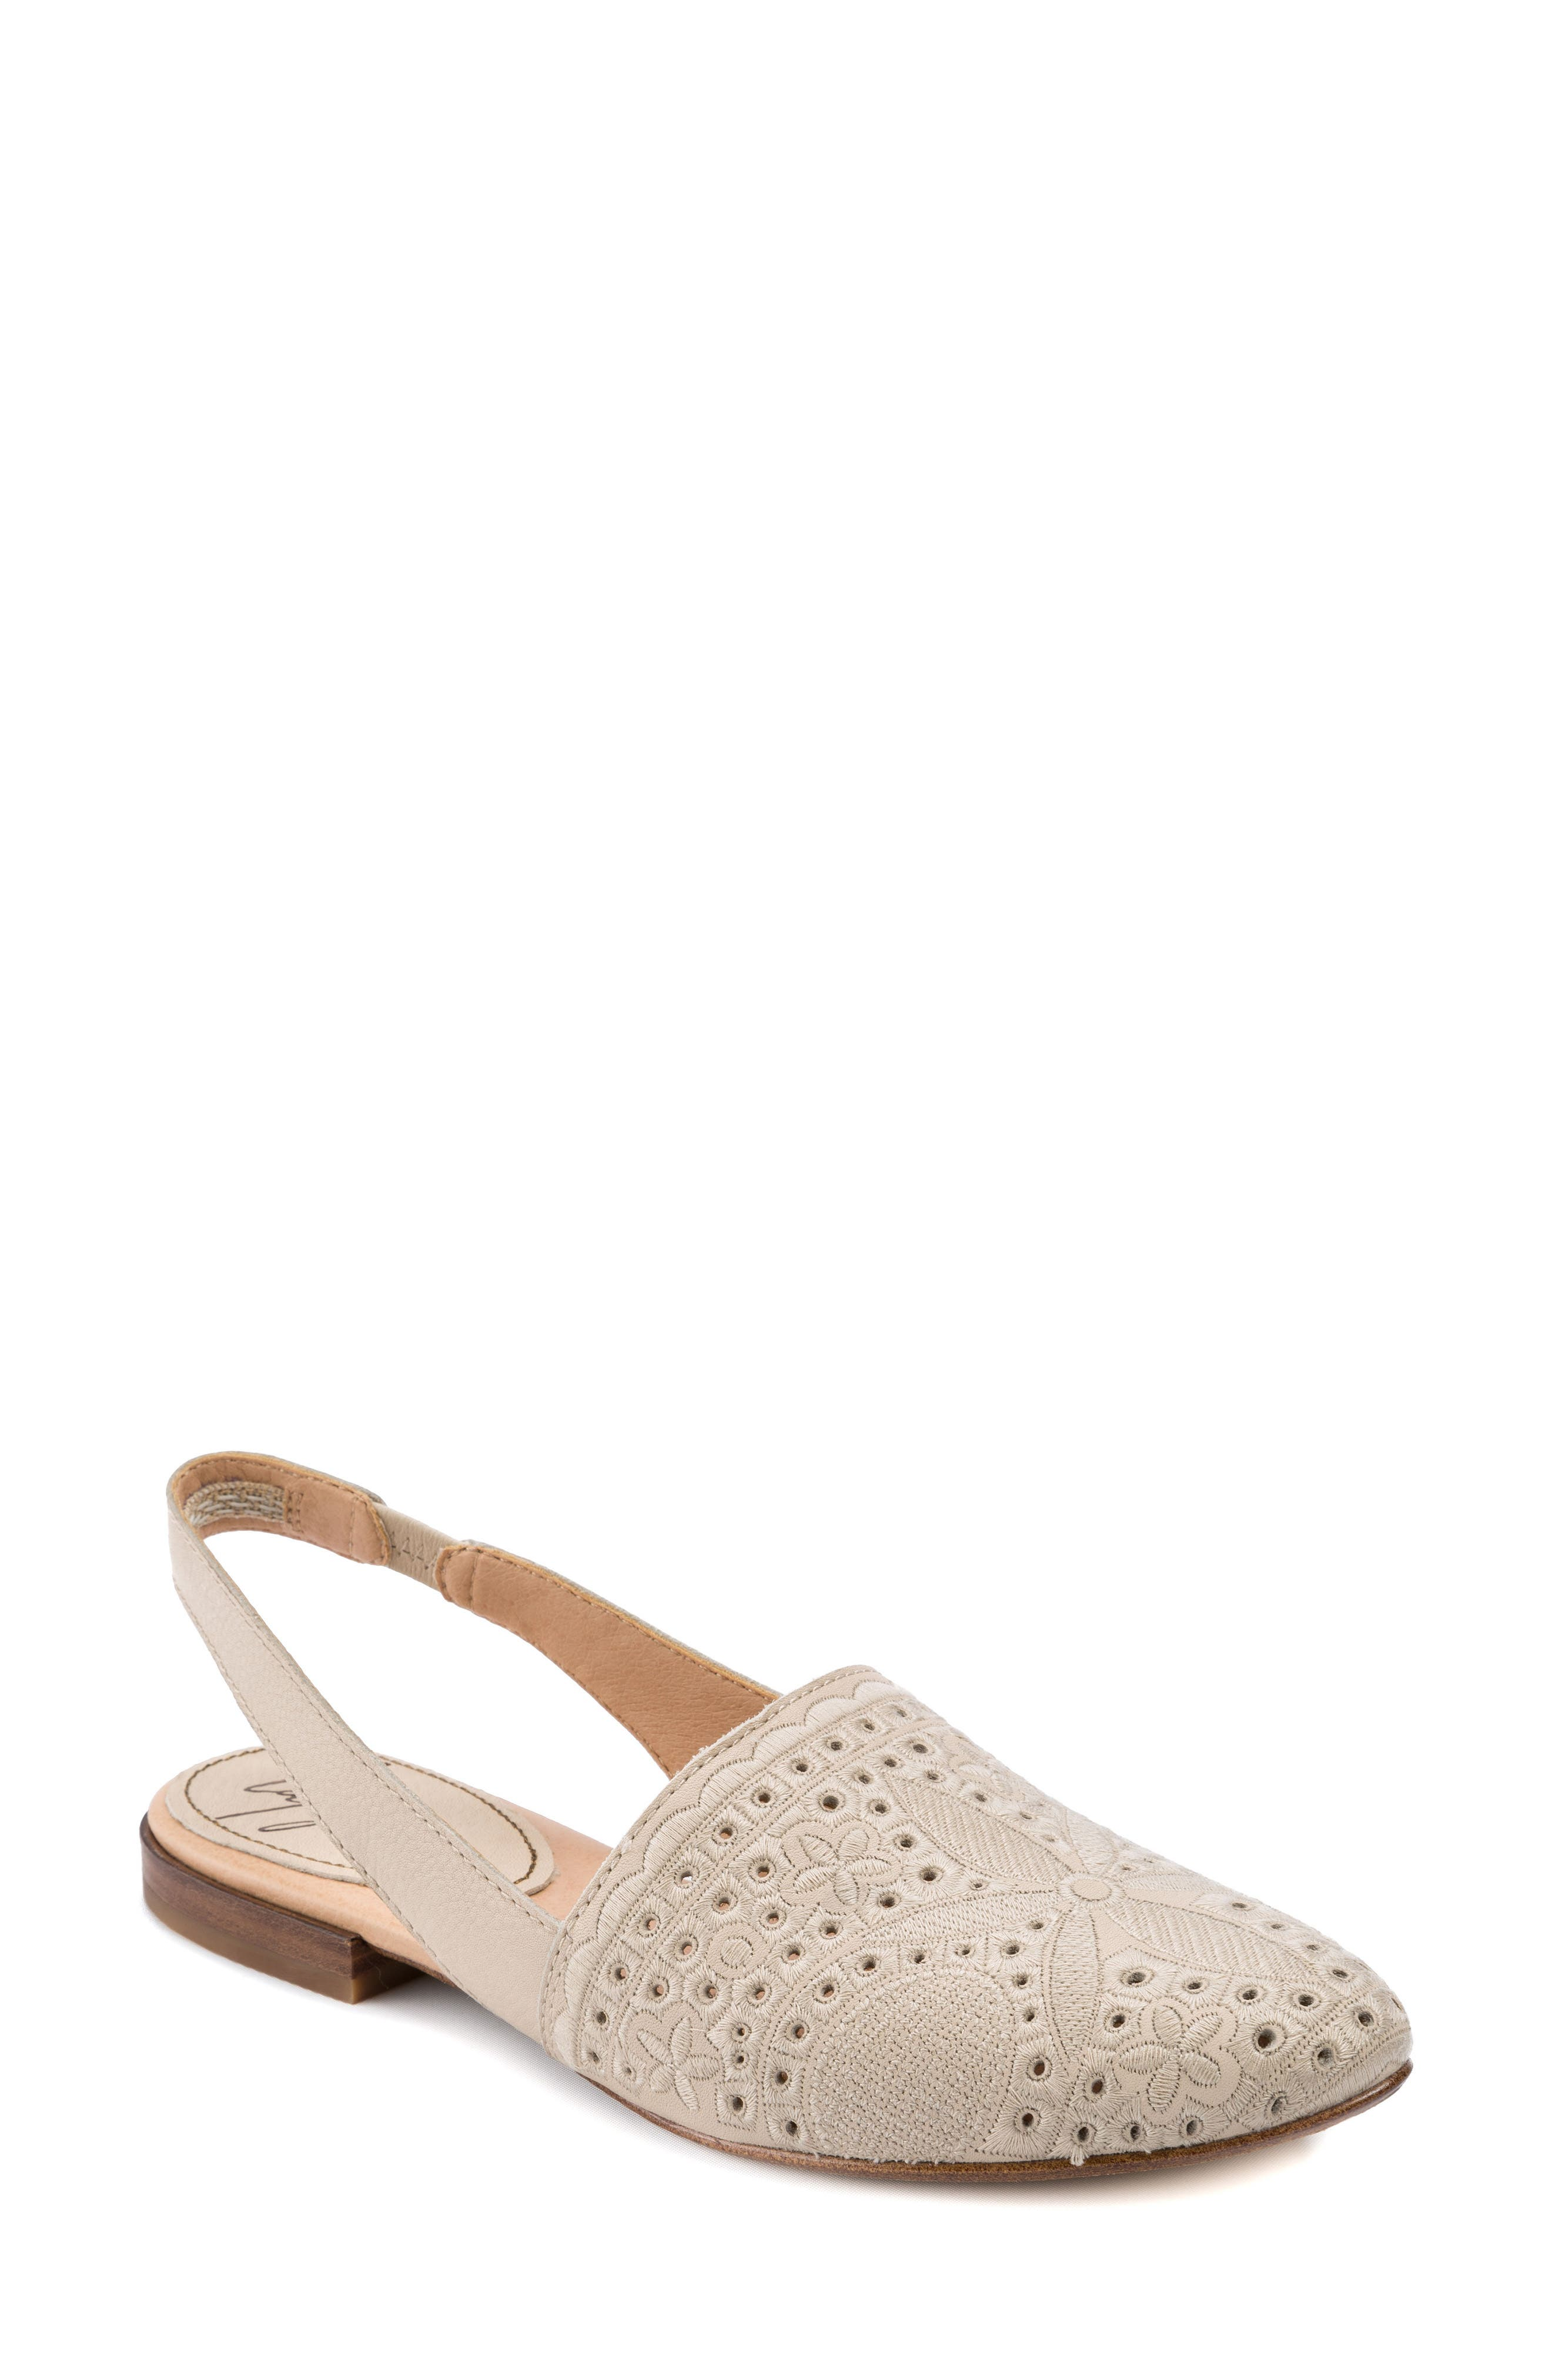 Ulu Embroidered Slingback Flat,                             Main thumbnail 1, color,                             Champagne